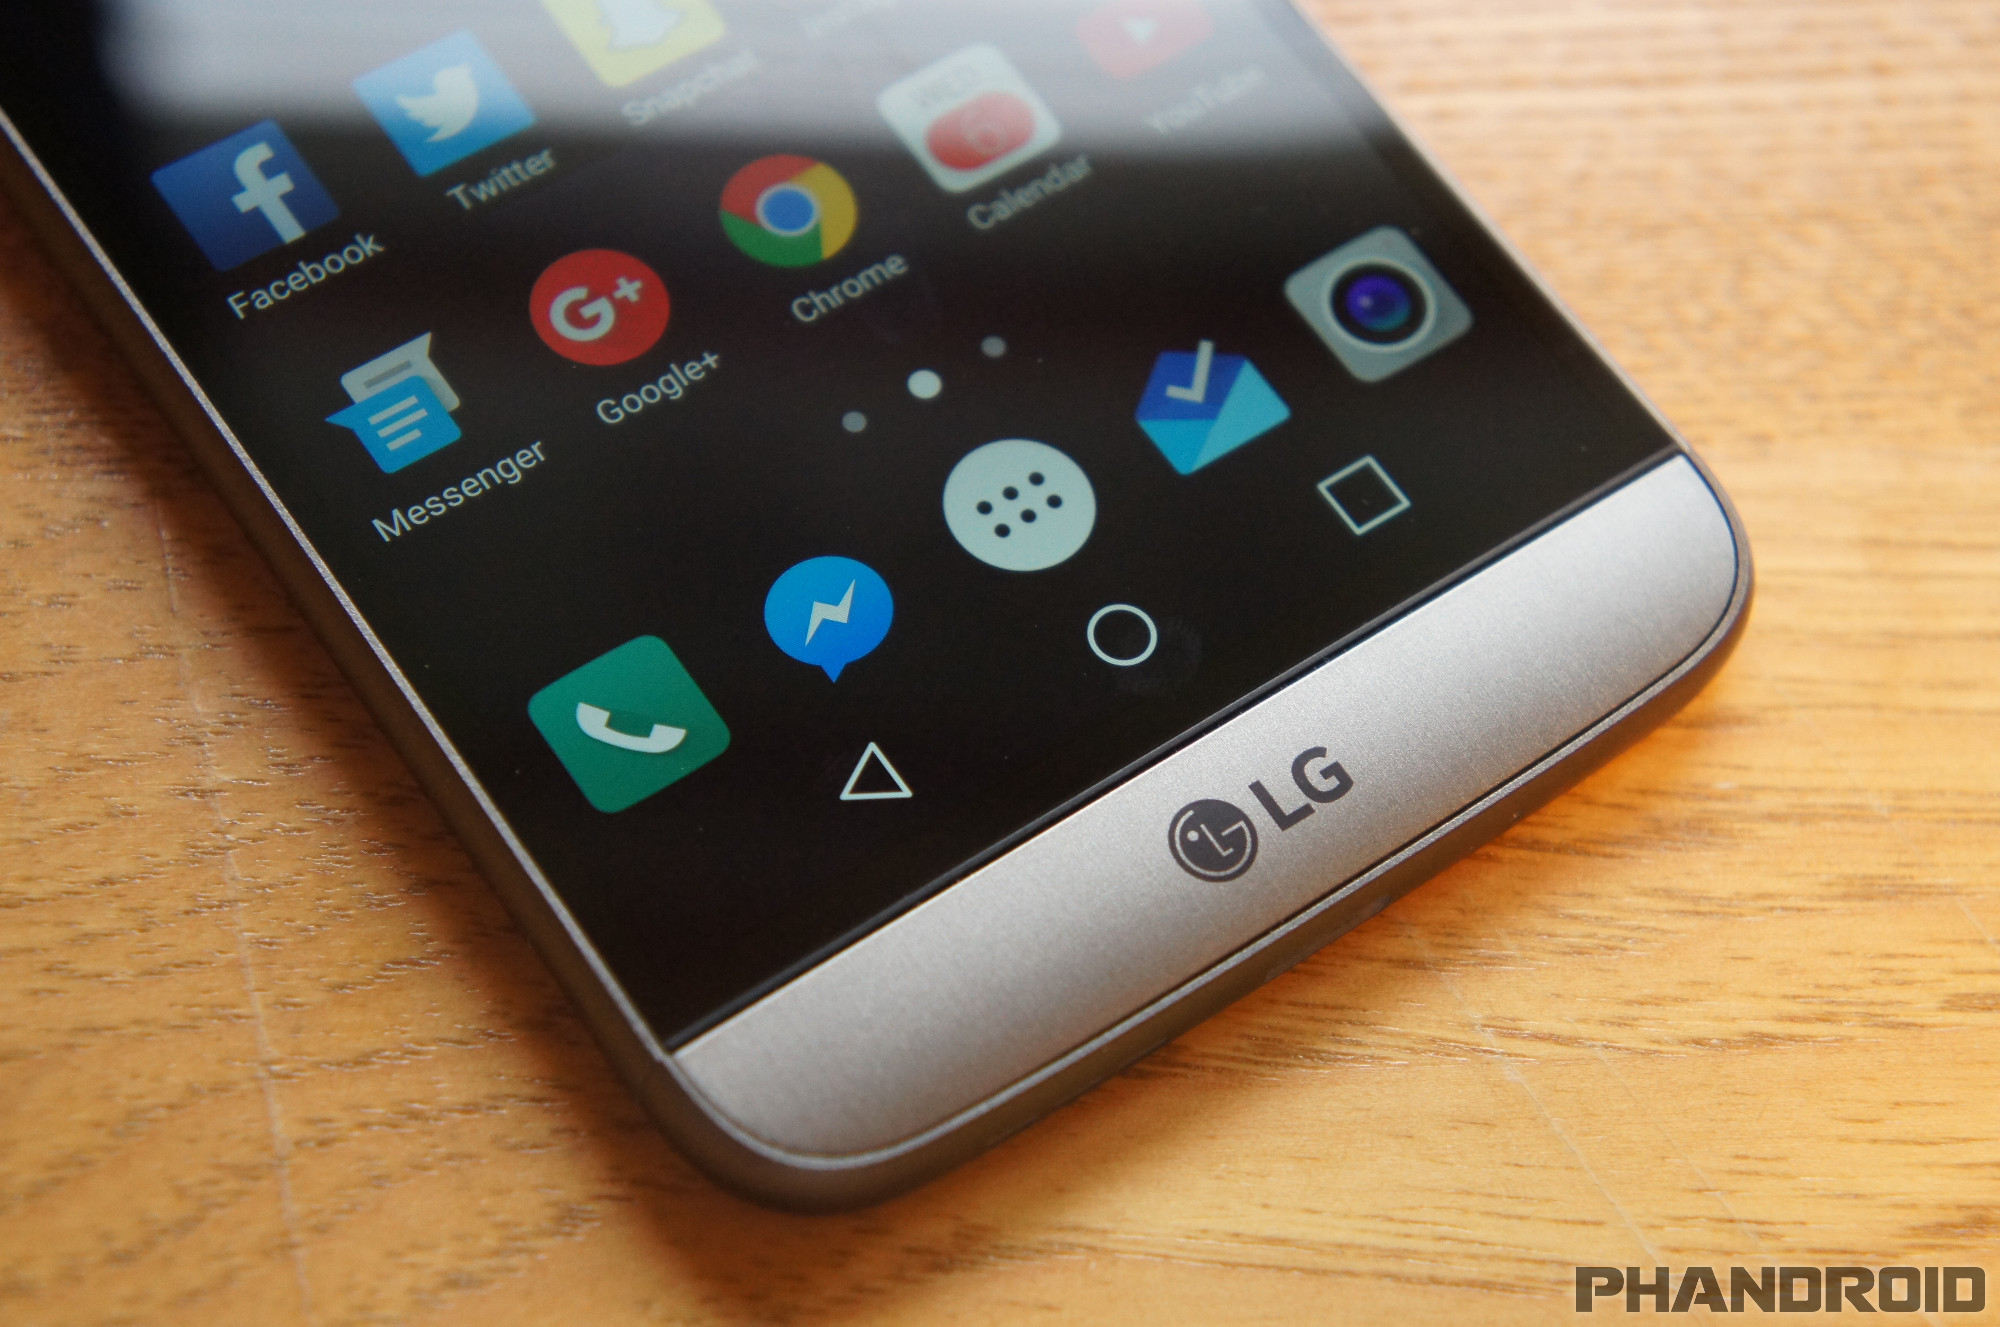 7 reasons why it's worth upgrading your LG G4 to the new LG G5